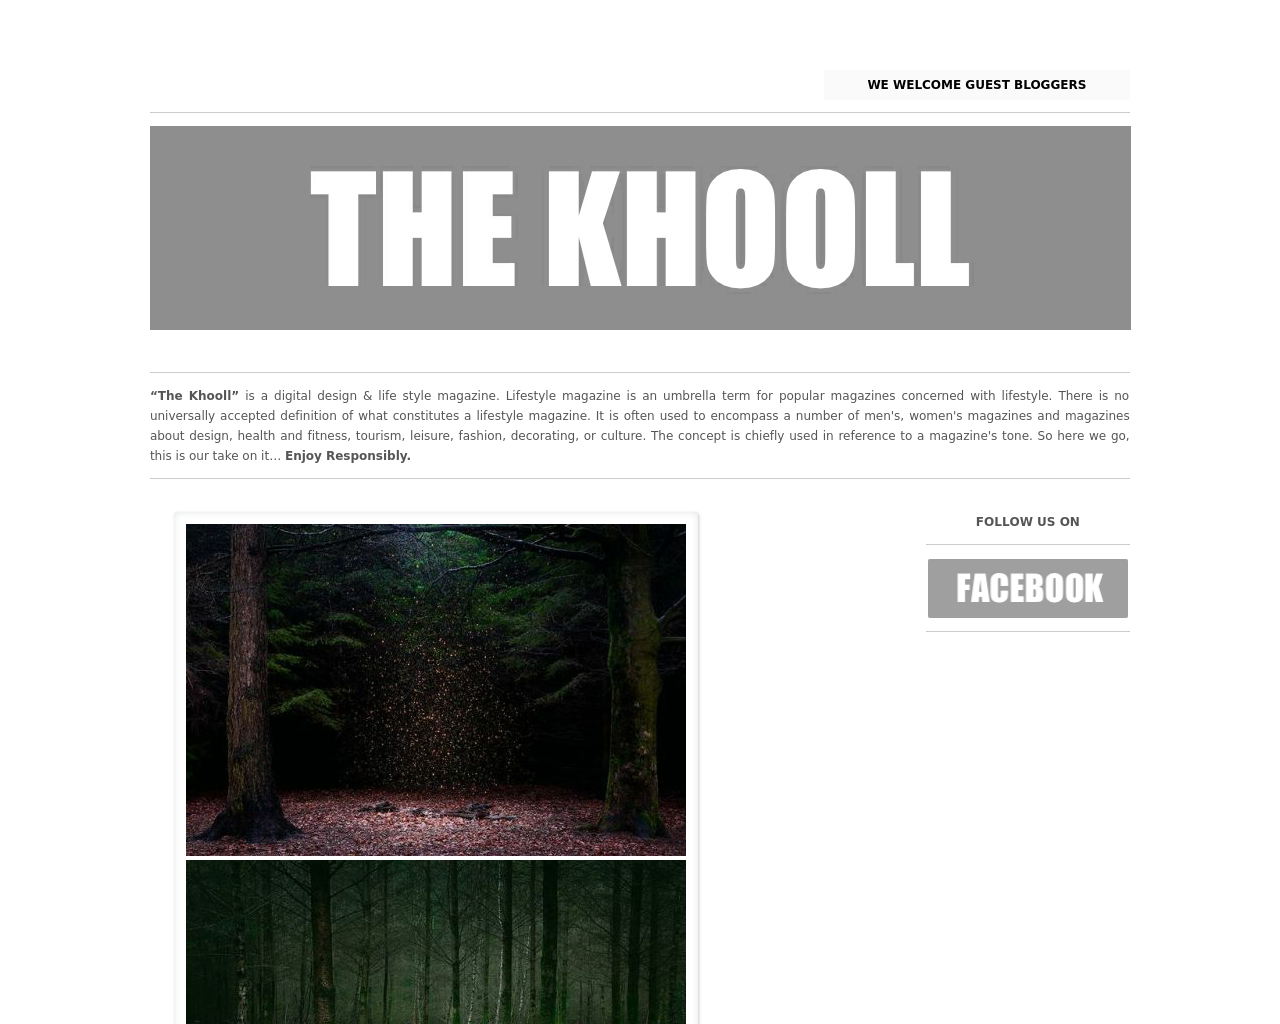 THE-KHOOLL-Advertising-Reviews-Pricing